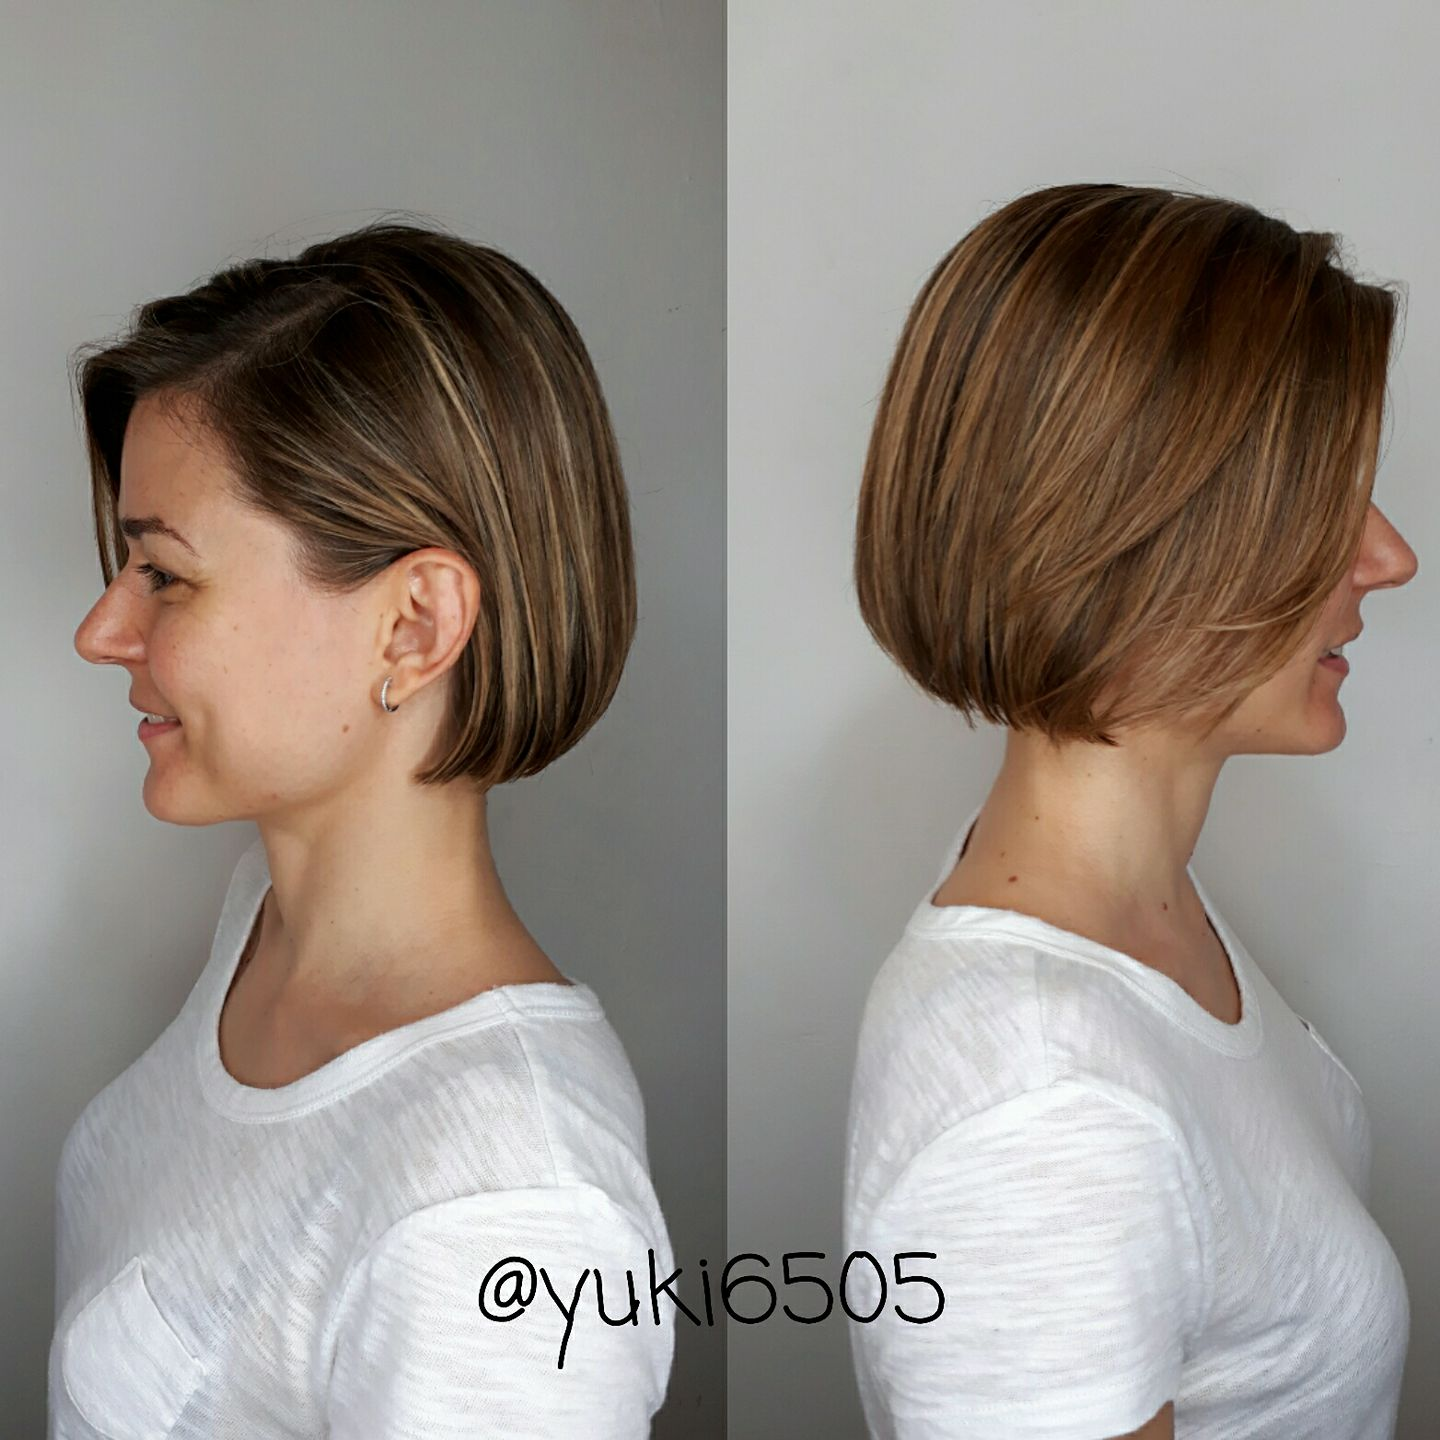 Ladies Short Haircut with Highlights